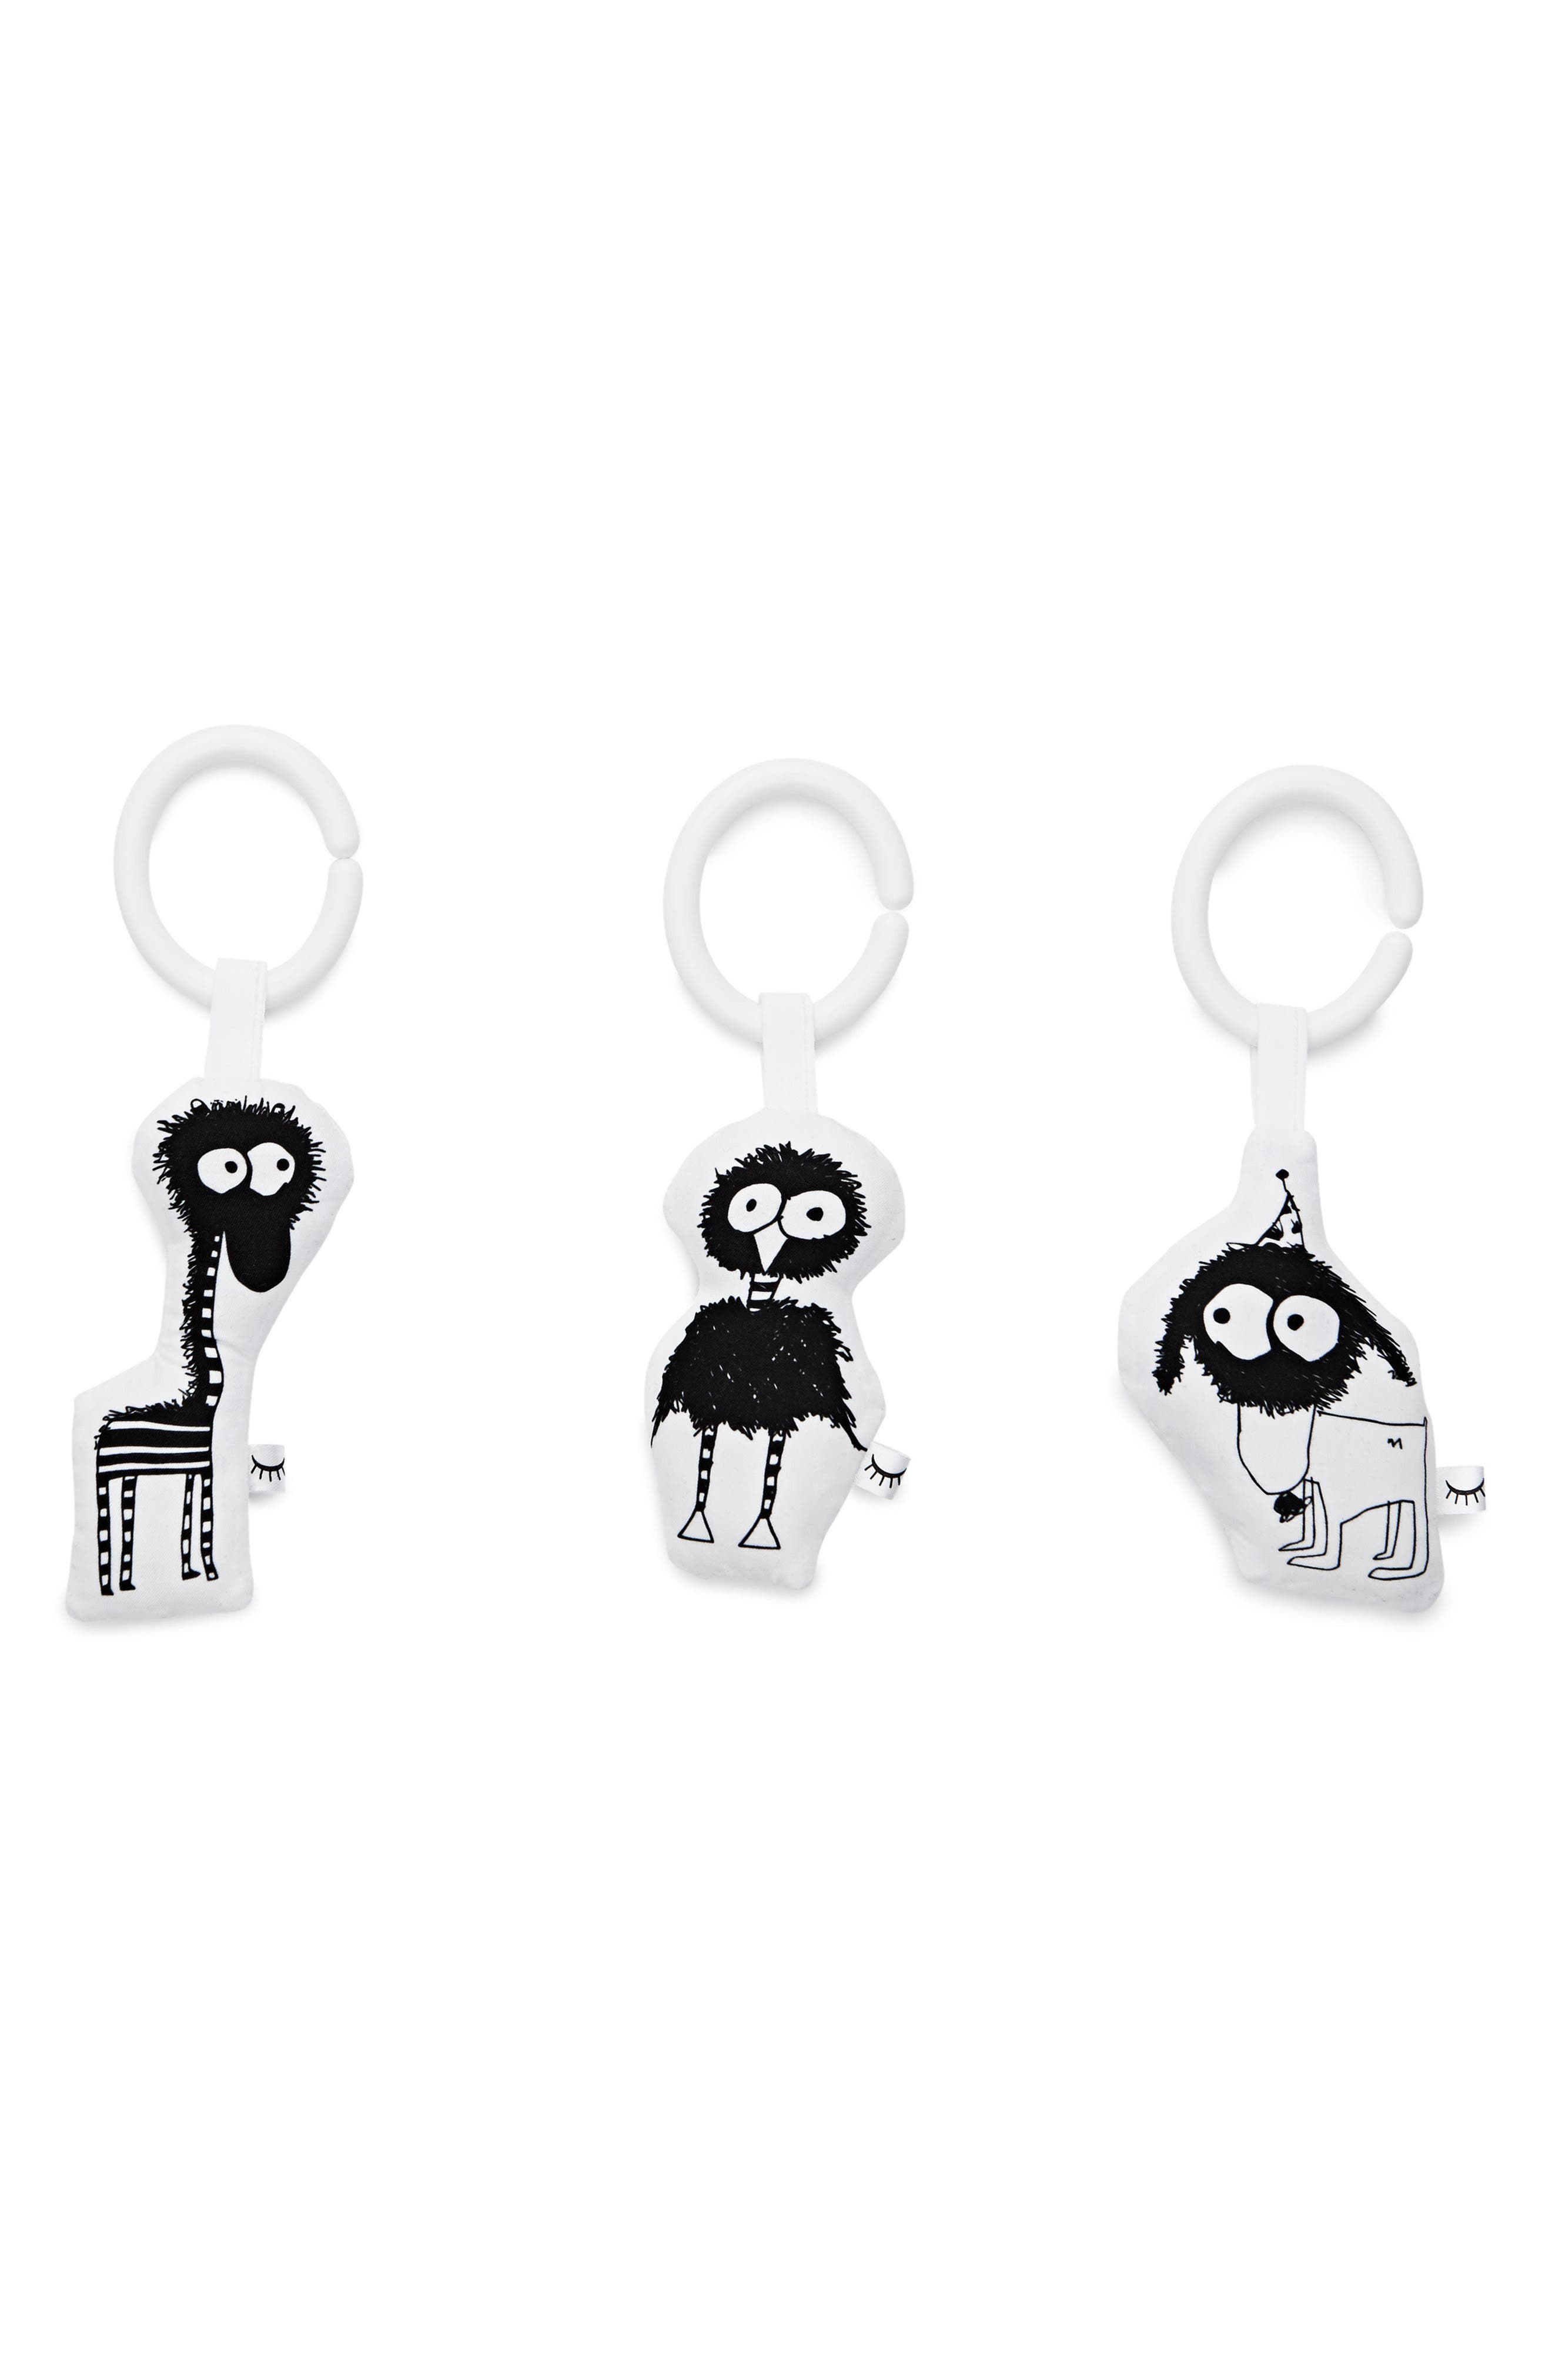 3-Piece Hanging Toy Set,                         Main,                         color, 002